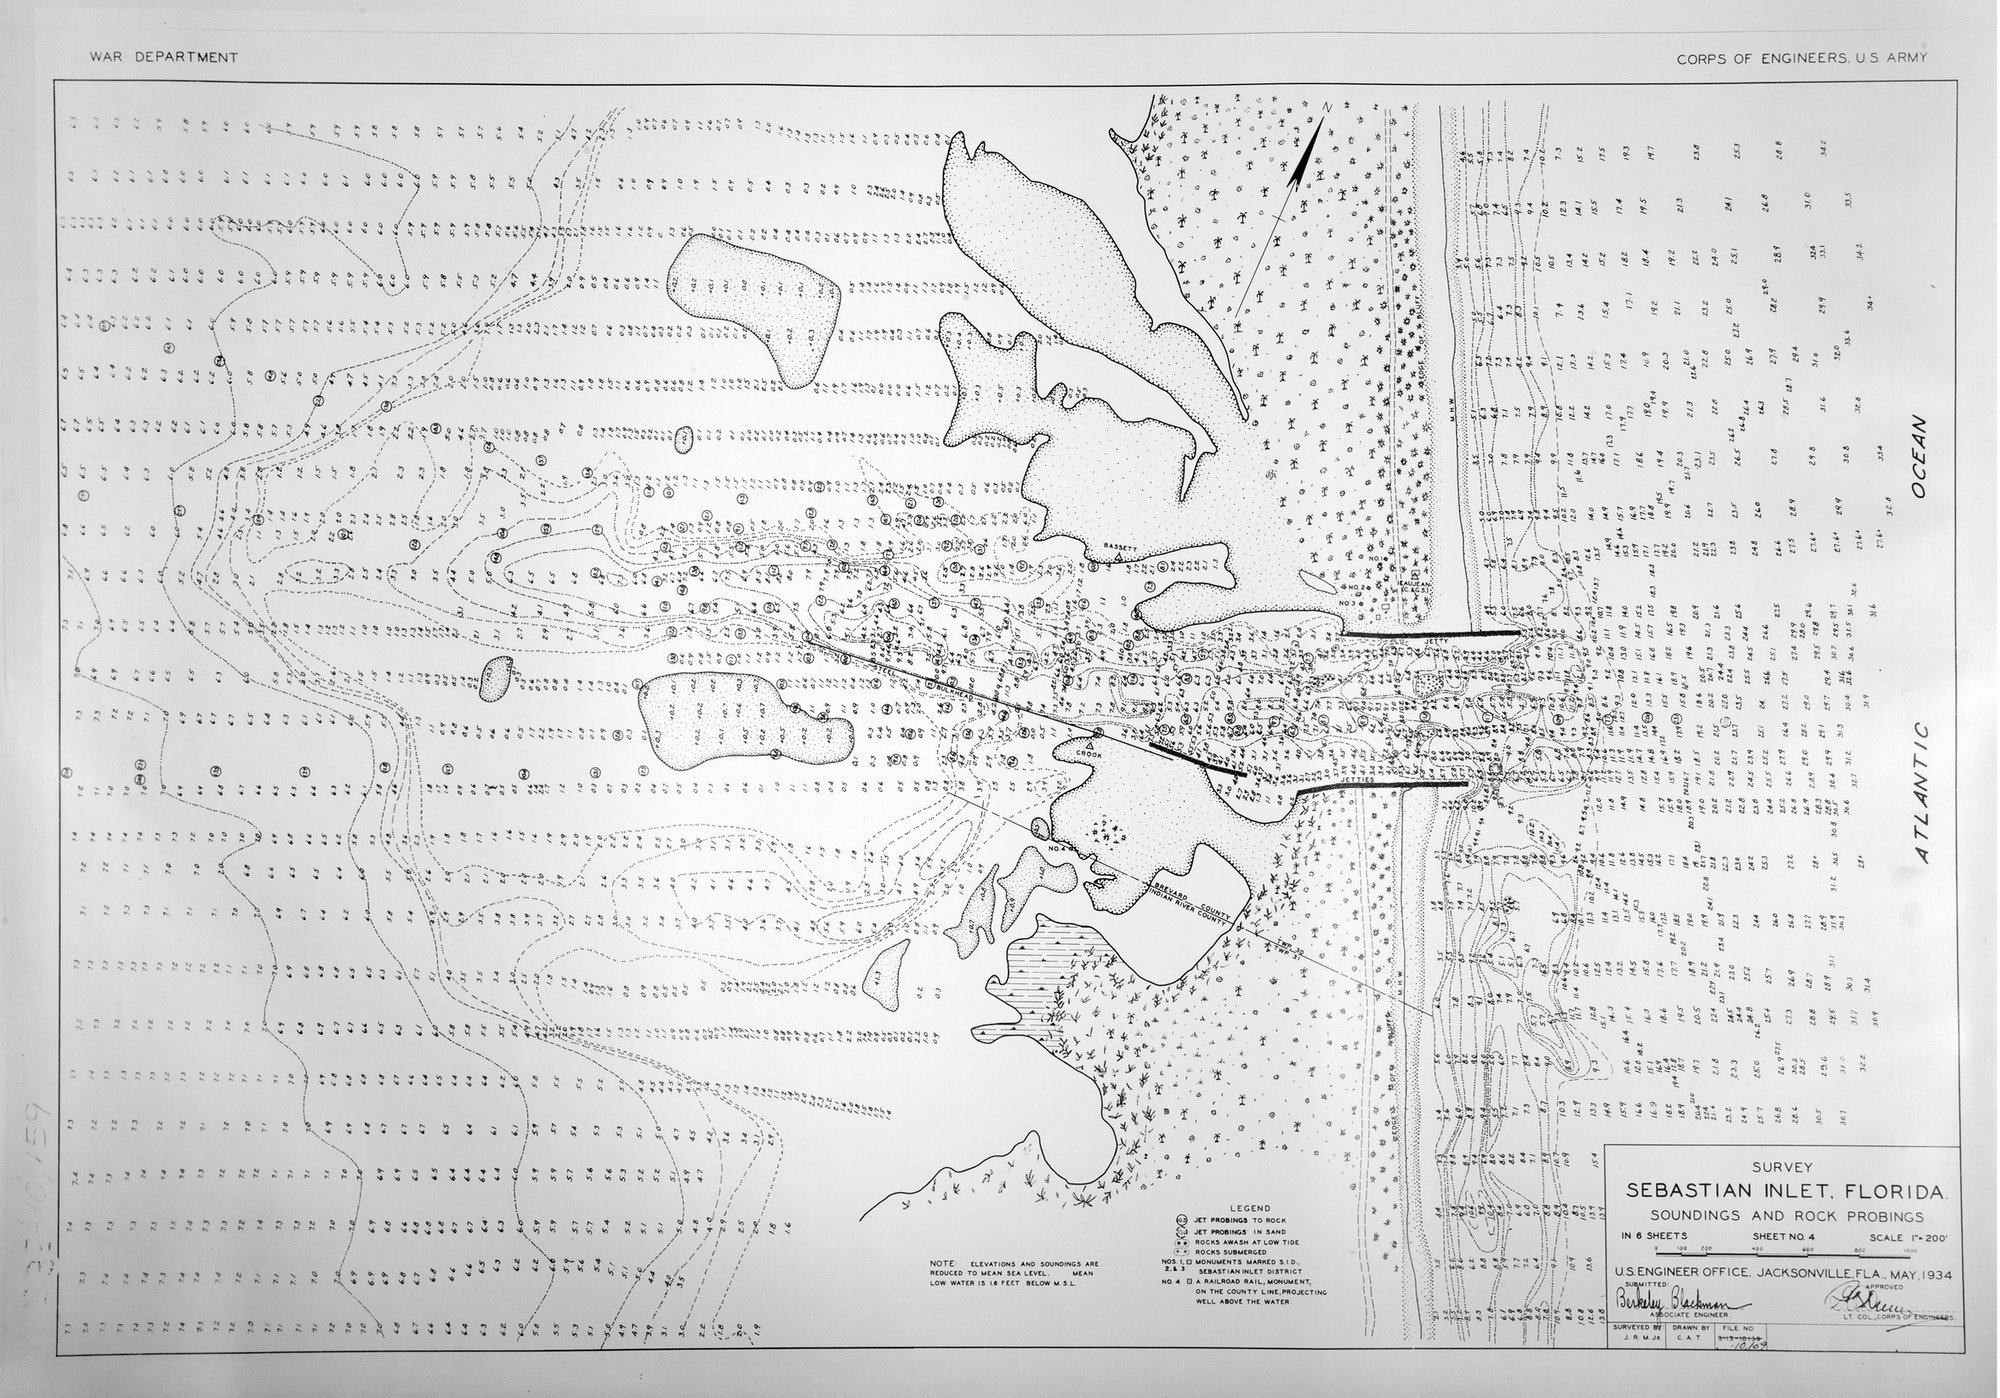 A May 1934 bathymetric survey of the inlet system showing depths, drawn by the US Army Corps of Engineers, Jacksonville.